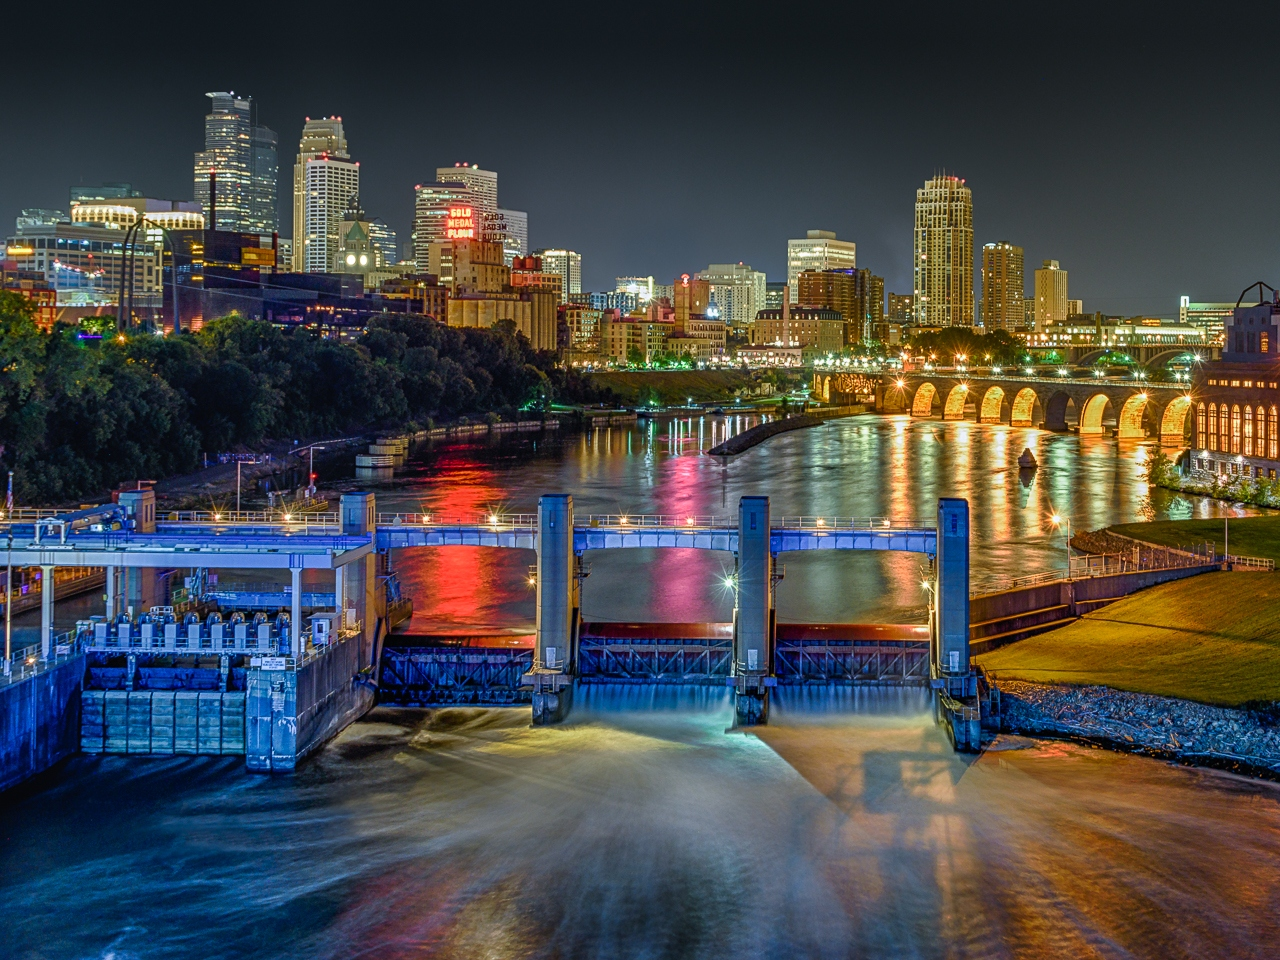 Minneapolis Night - David Perez - MNCC